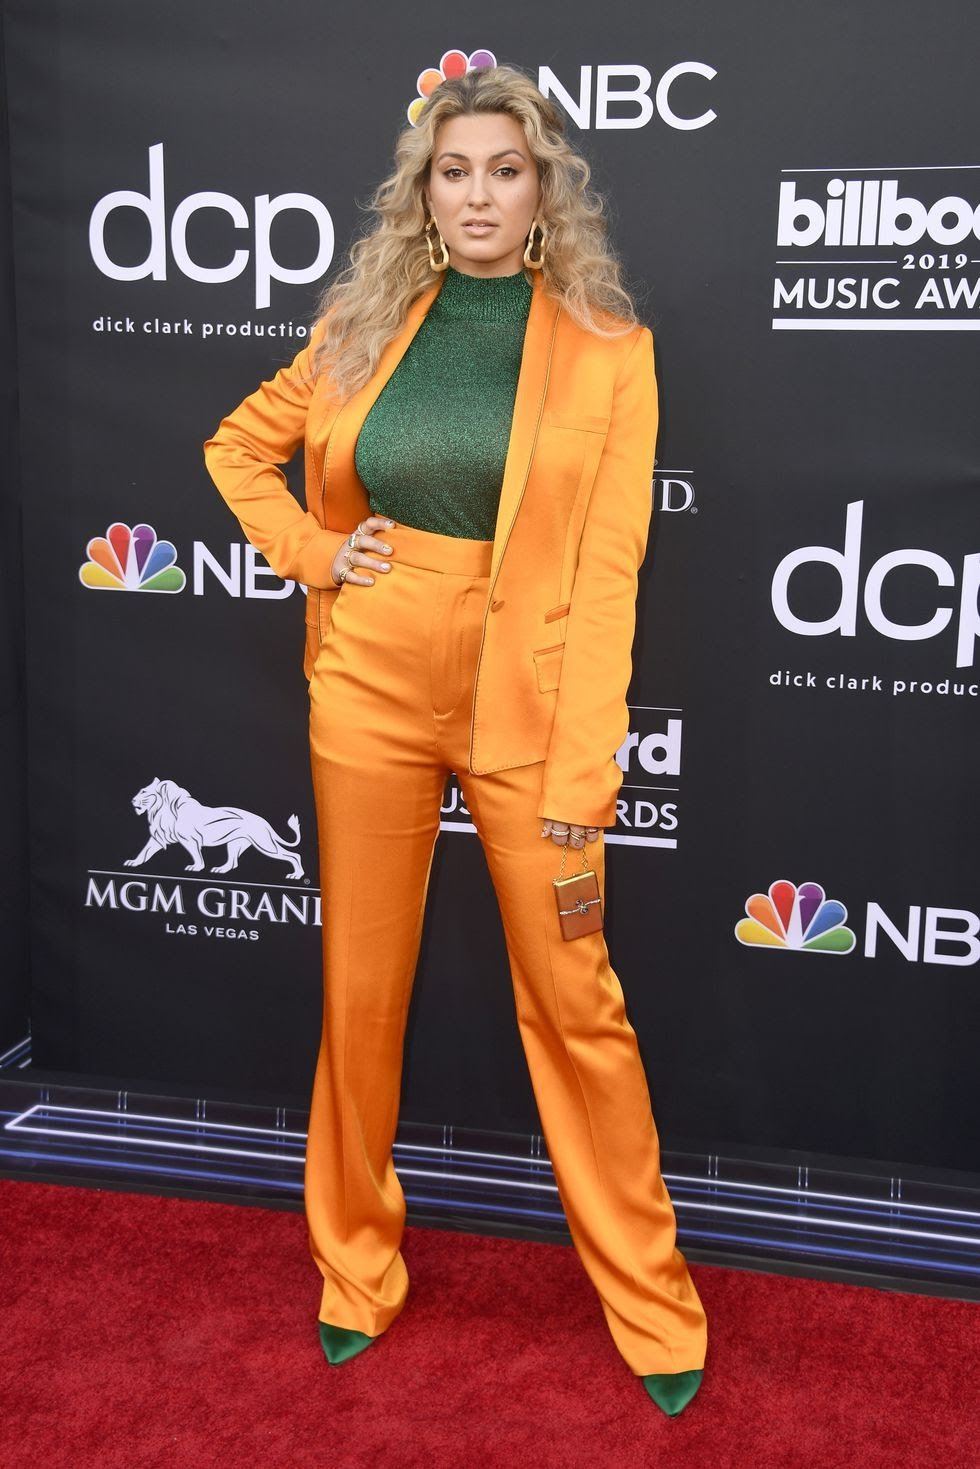 BBM AWARDS 2019 RED CARPET TORI KELLY.jpg